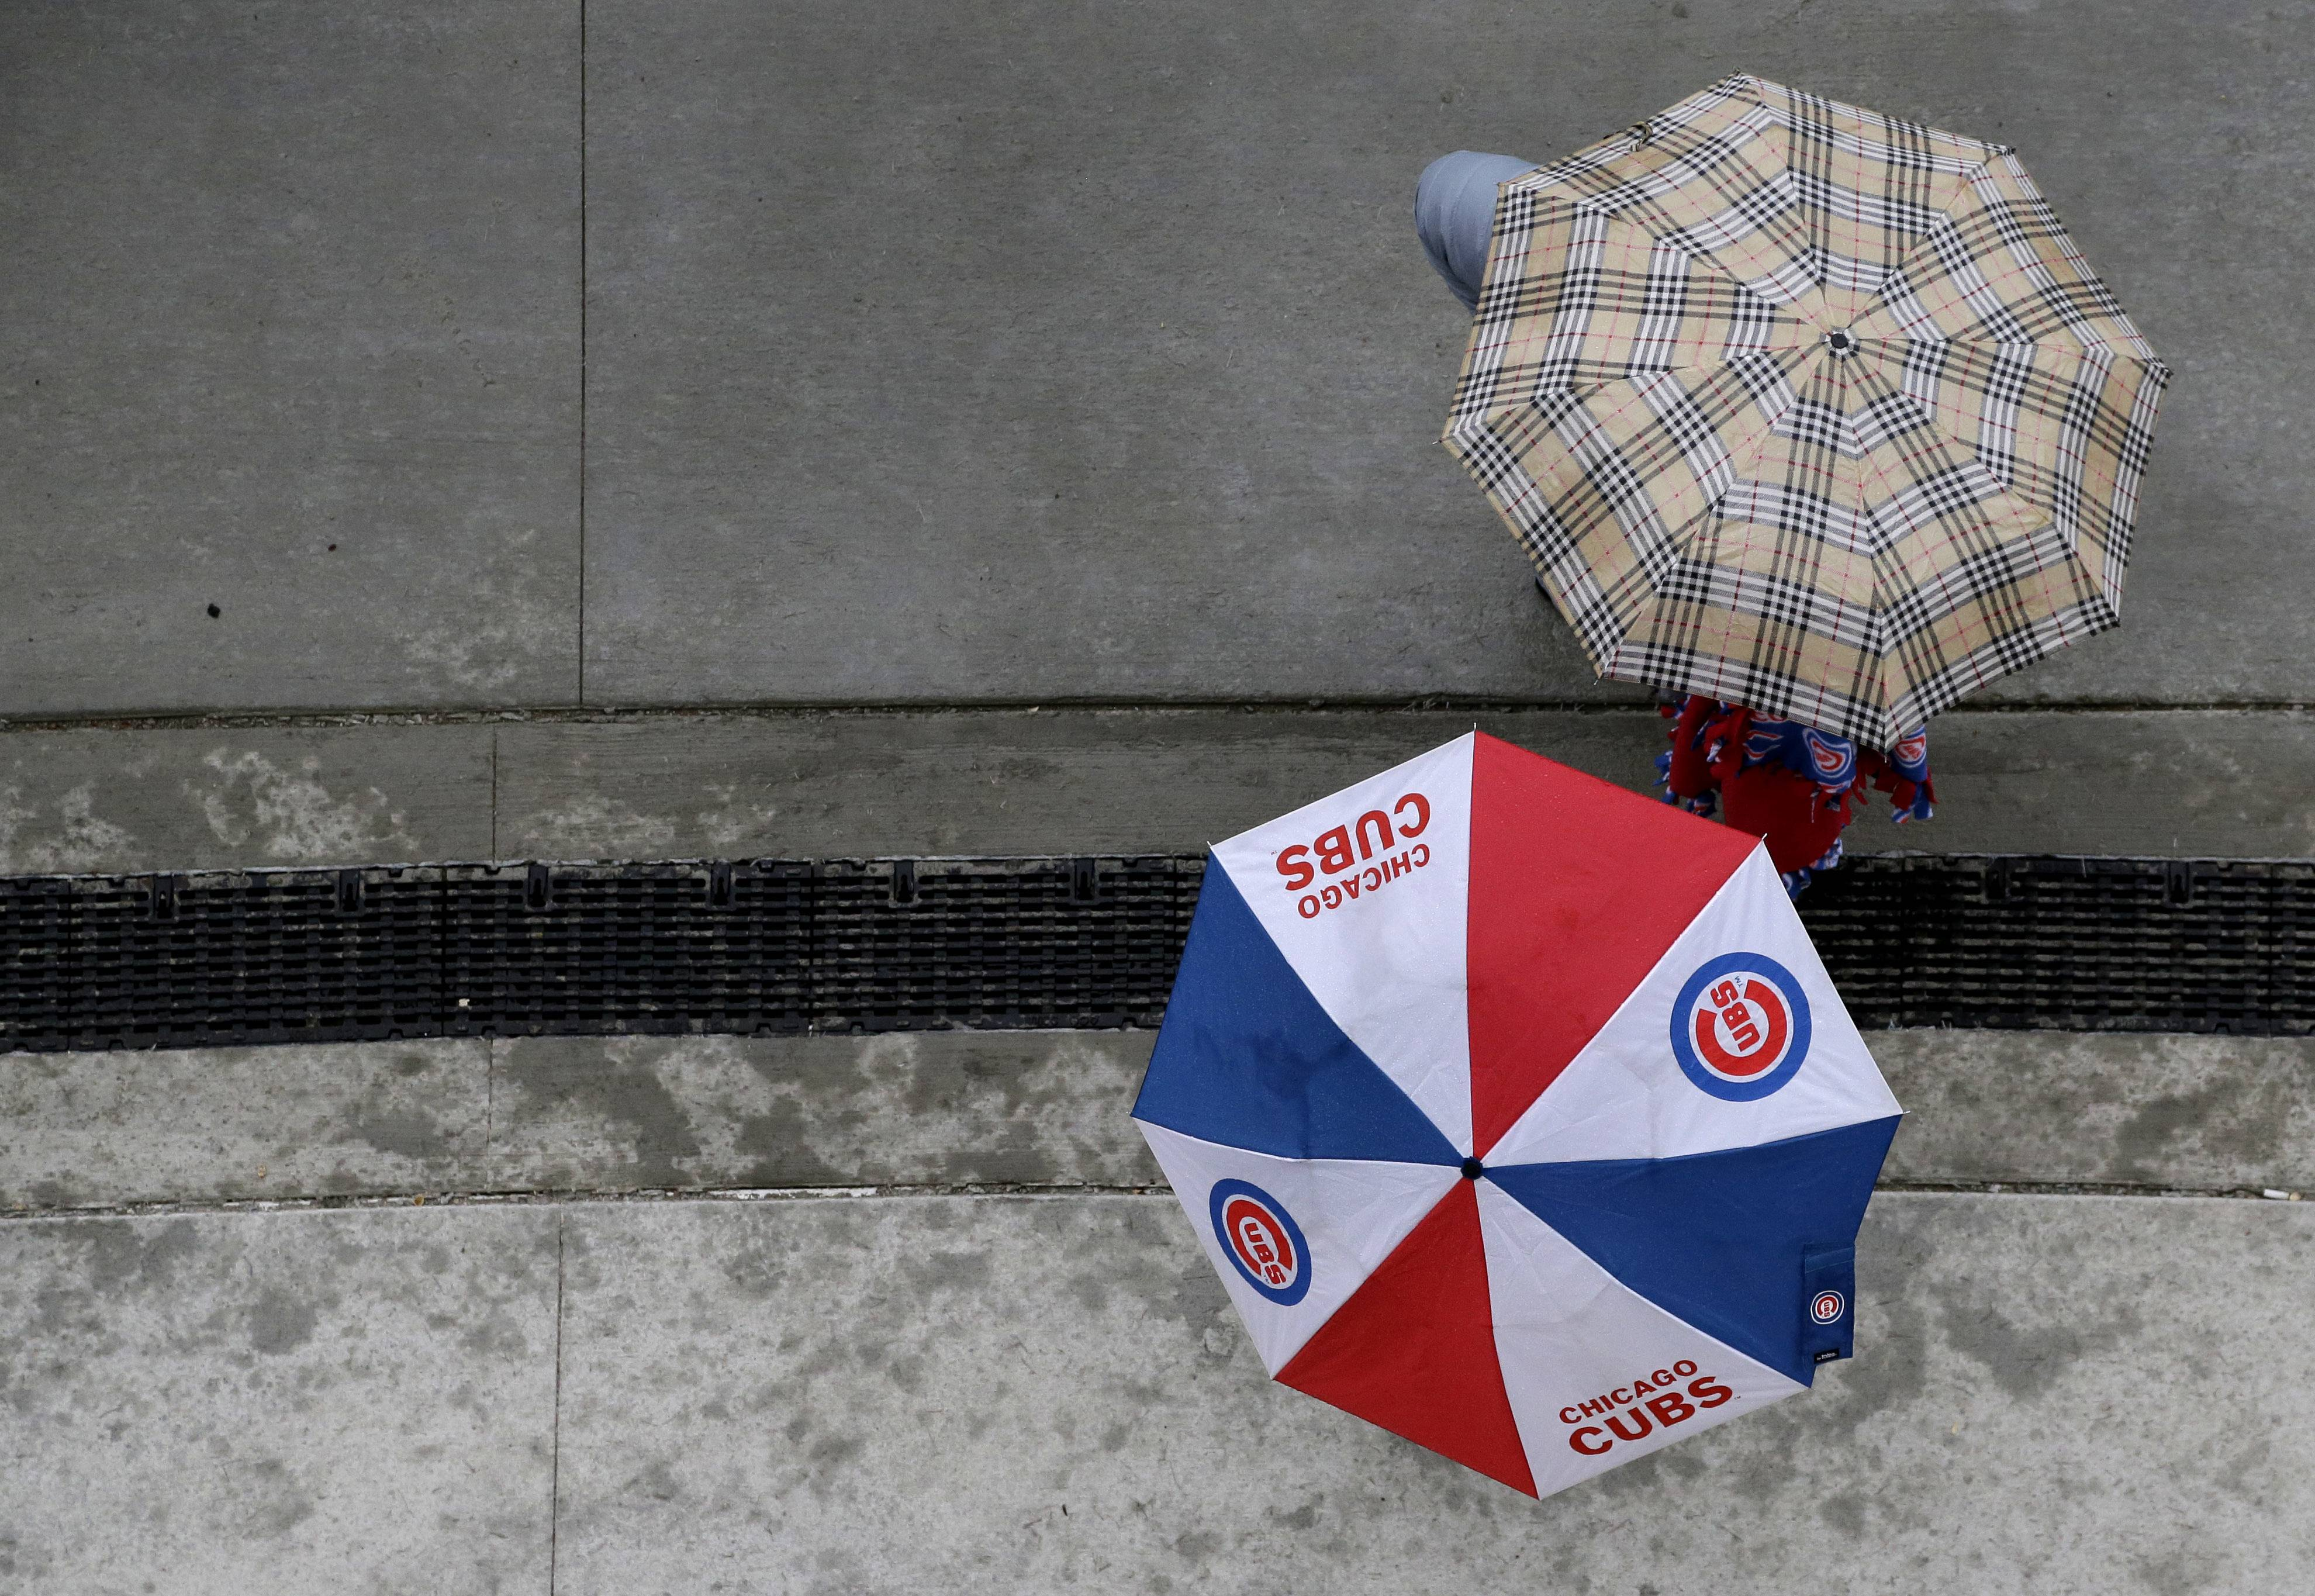 The scheduled game Saturday between the Cubs and Atlanta Braves has been postponed because of rain. Rain was forecast all day in Chicago. The game was called about two hours before the scheduled first pitch at 1:20 p.m. No makeup date was immediately announced.